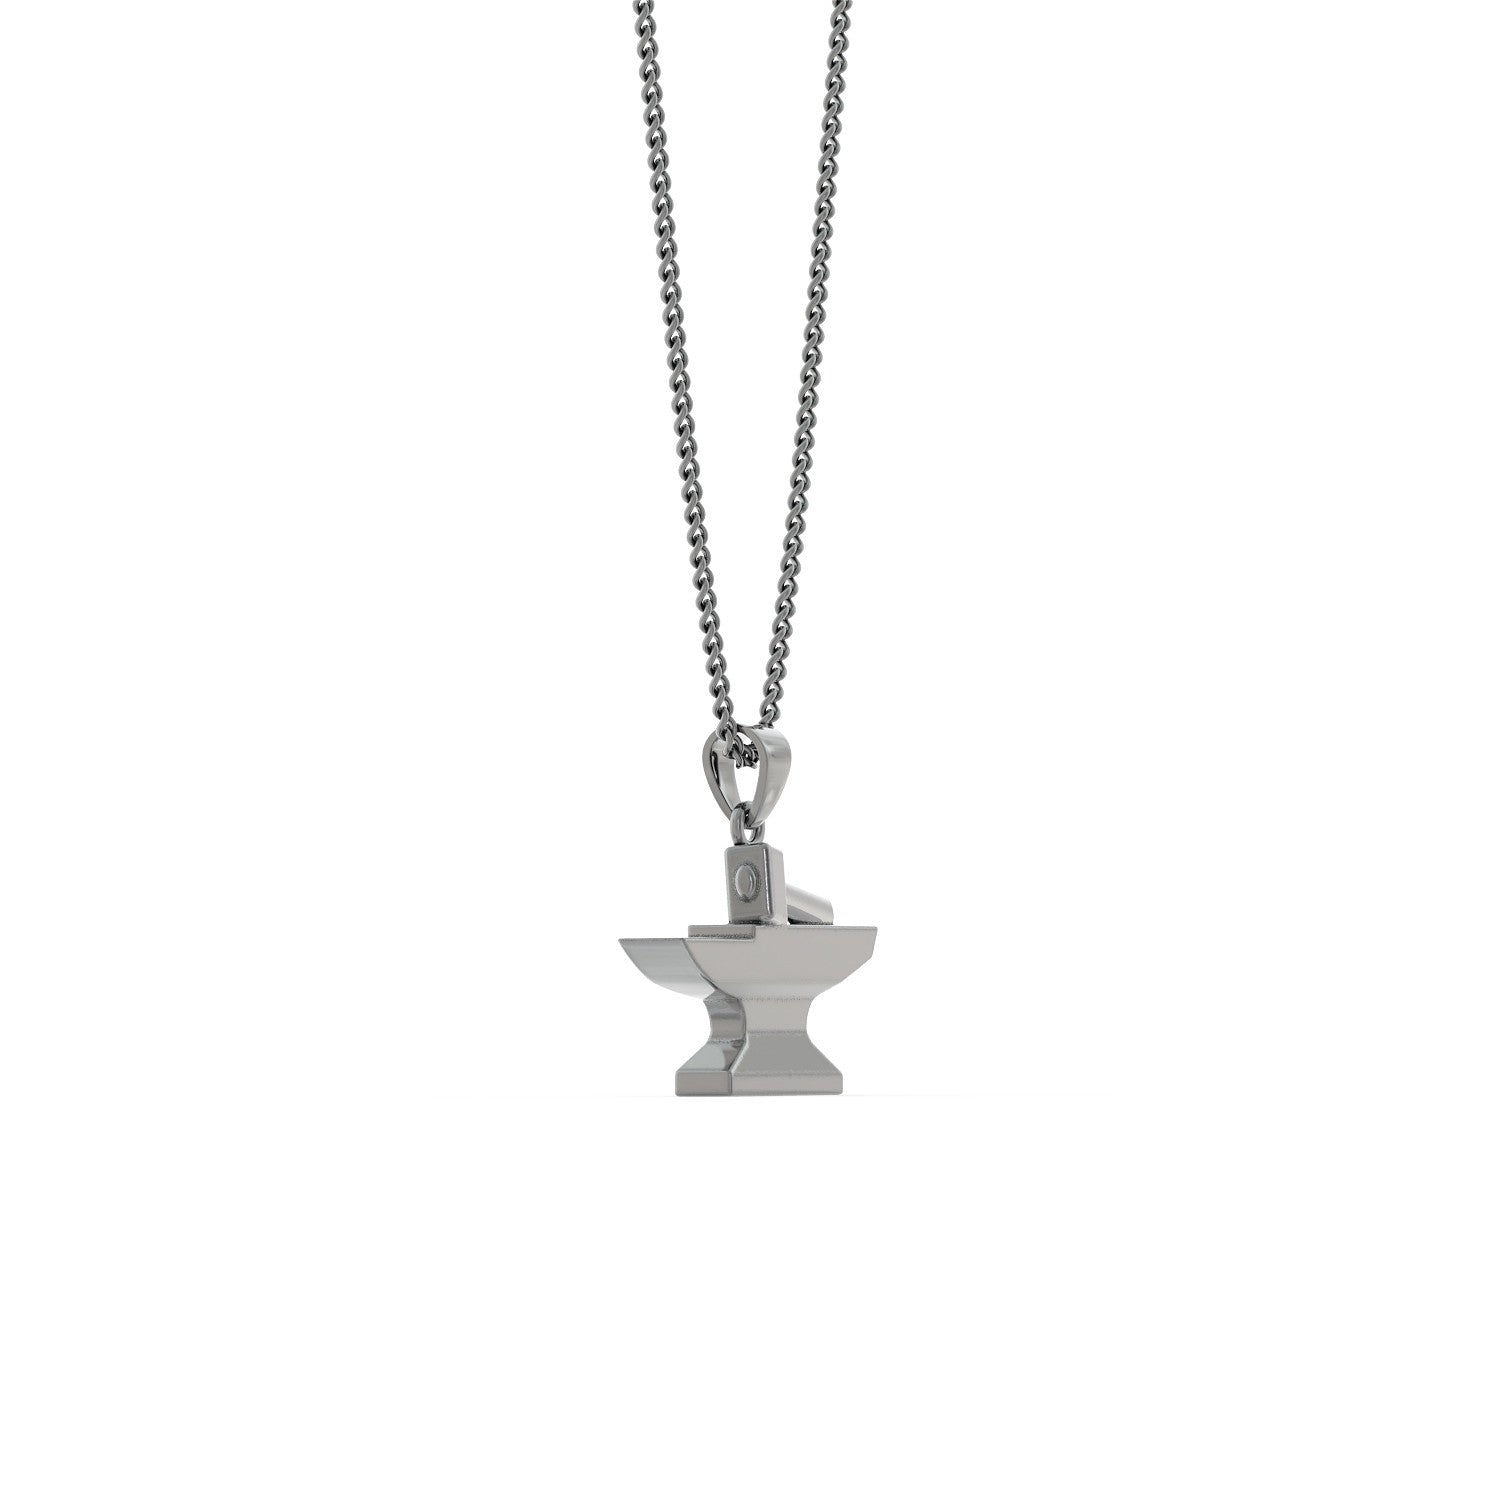 Hammer and Anvil Necklace